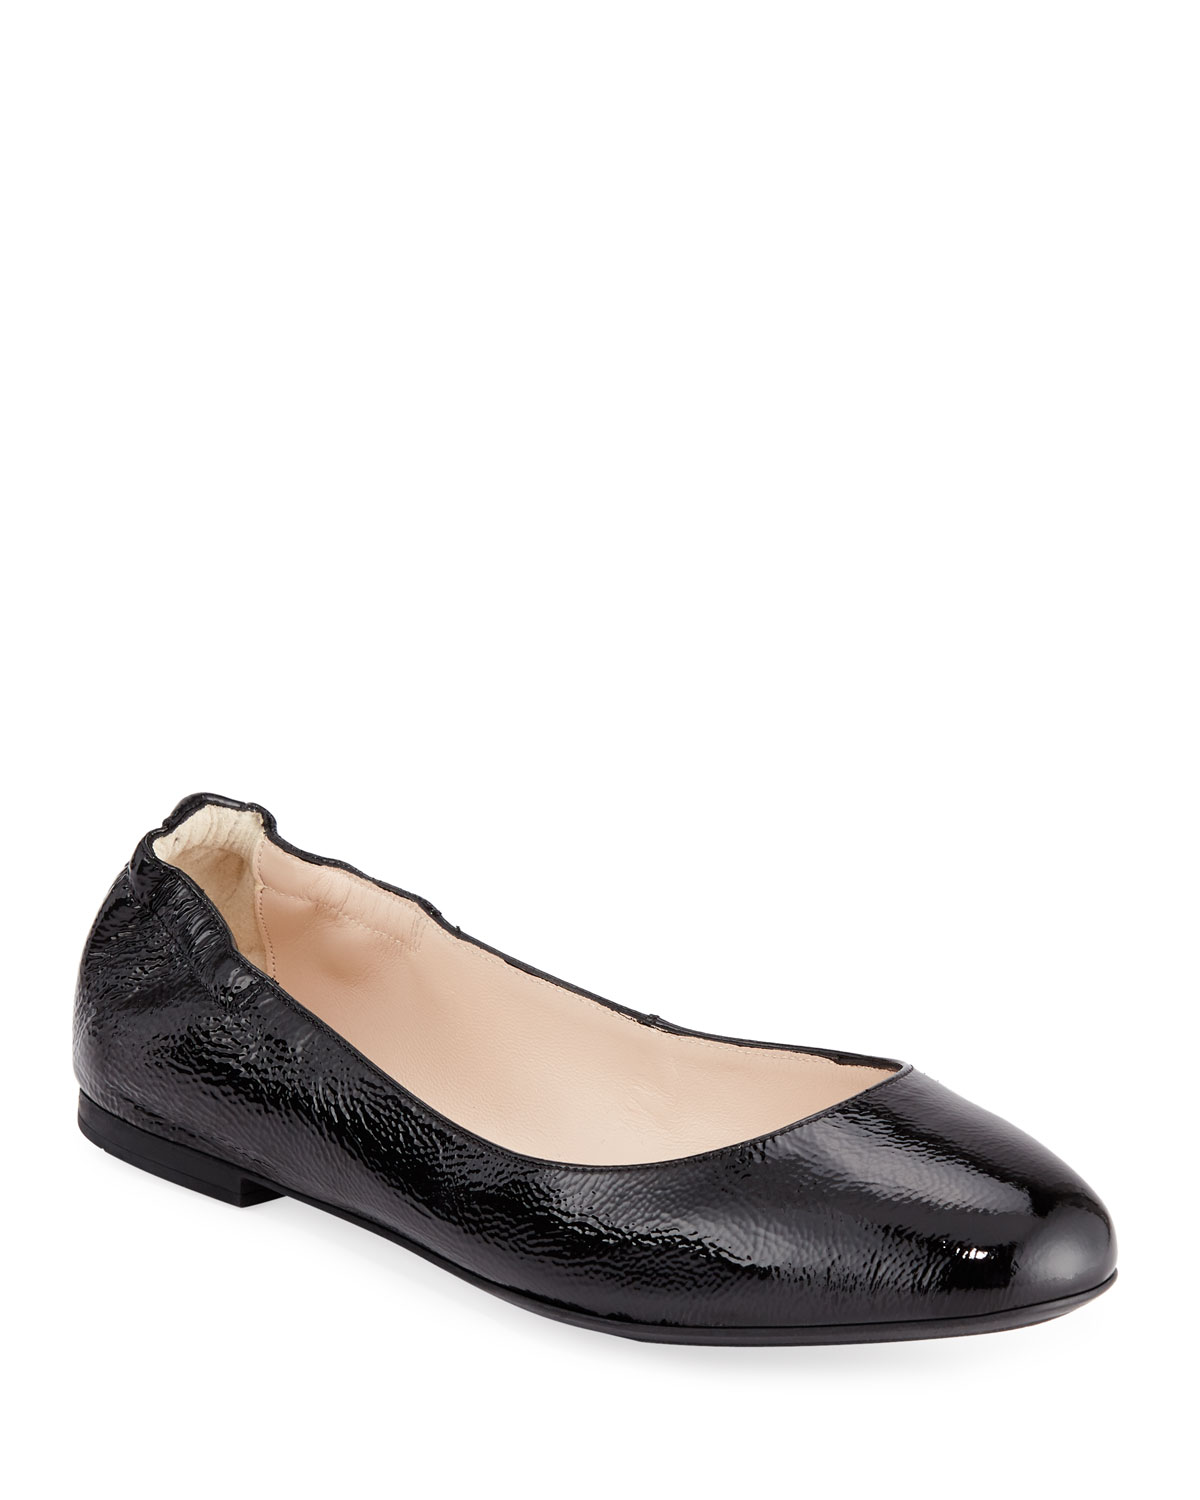 Ackley Patent Leather Ballet Flats